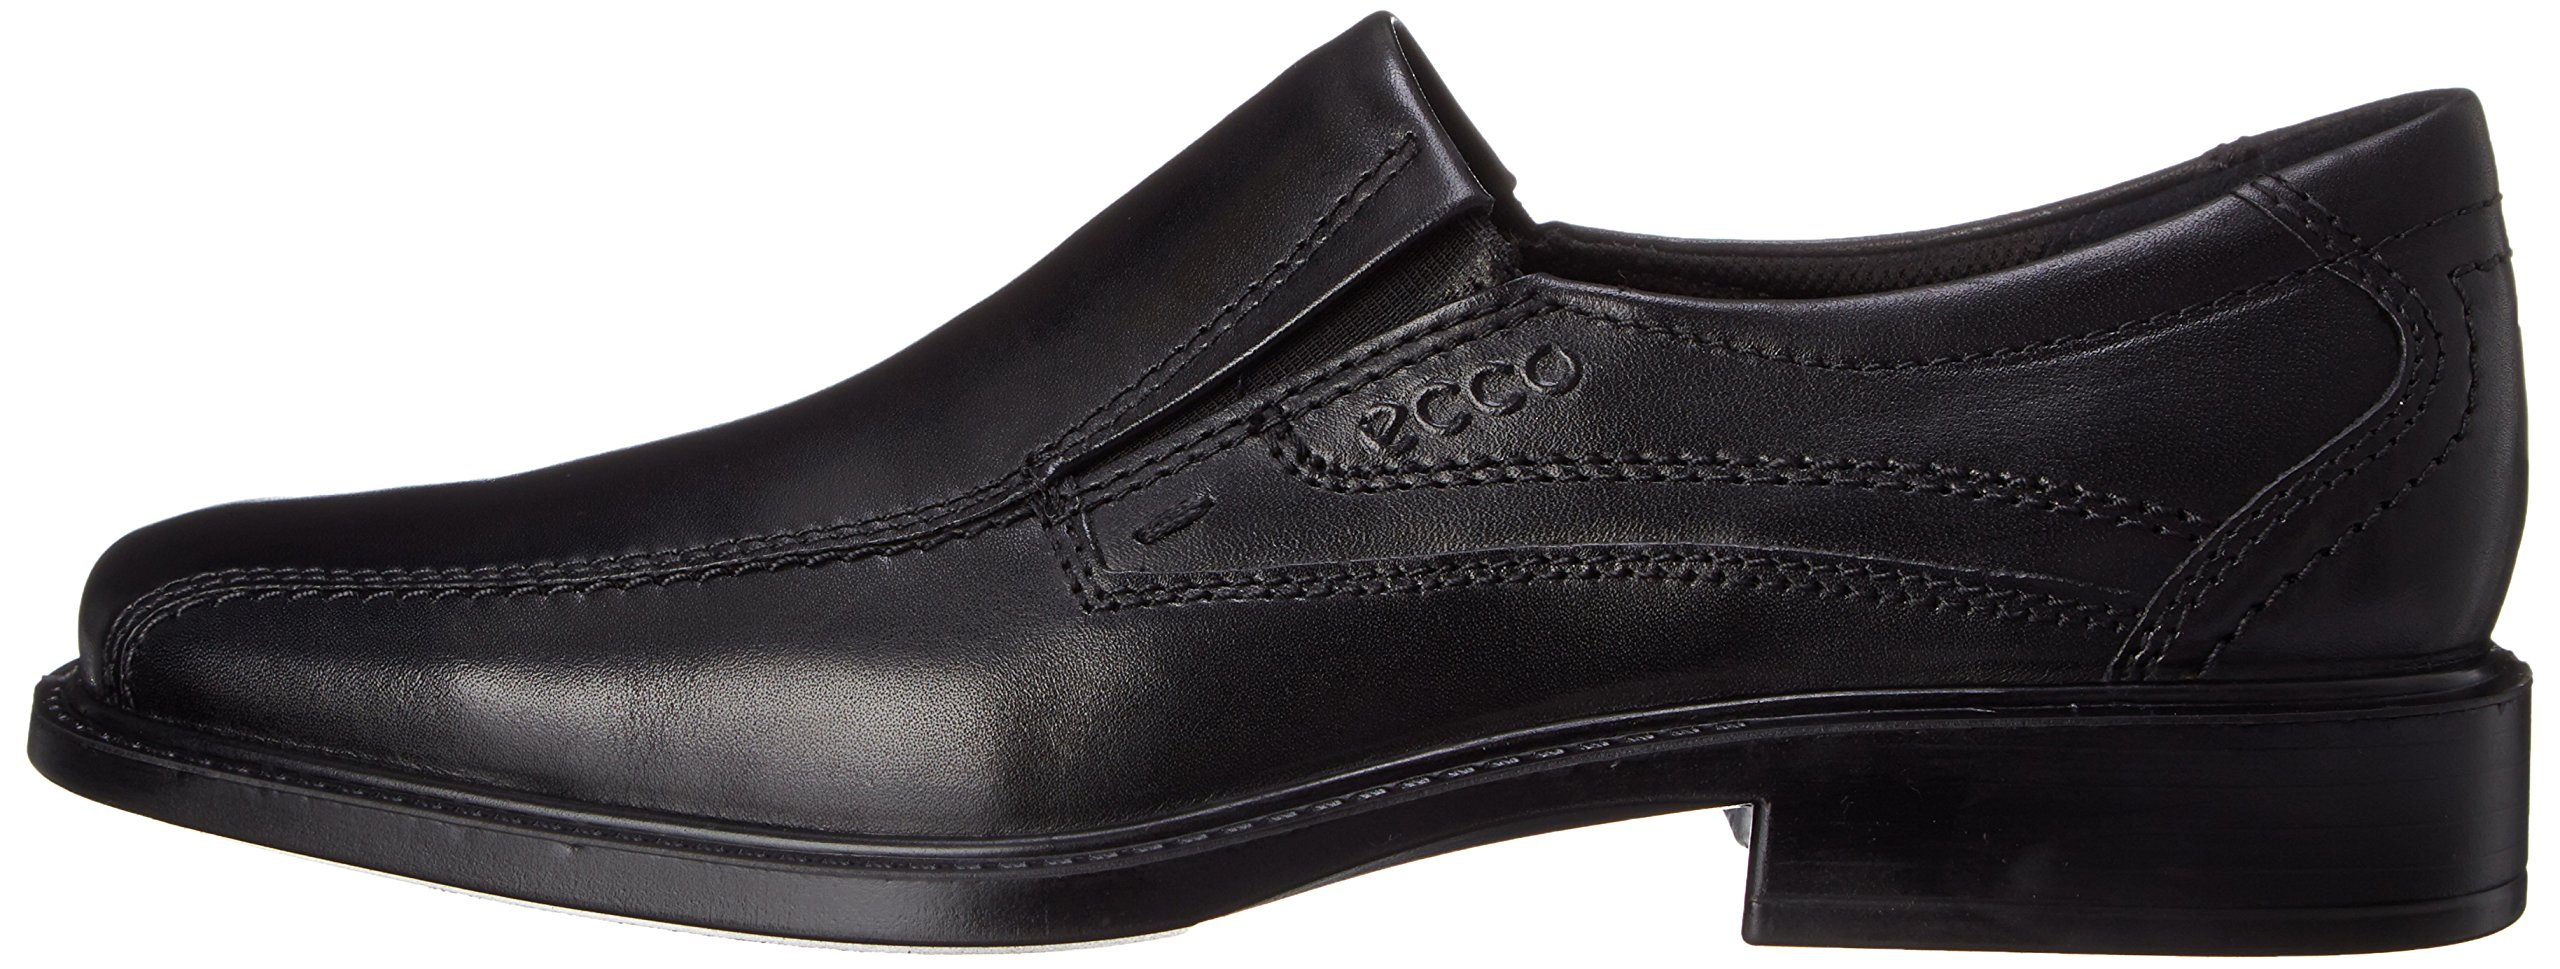 ECCO Men's New Jersey Slip On,Black,39 EU (US Men's 5-5.5 M) by ECCO (Image #5)